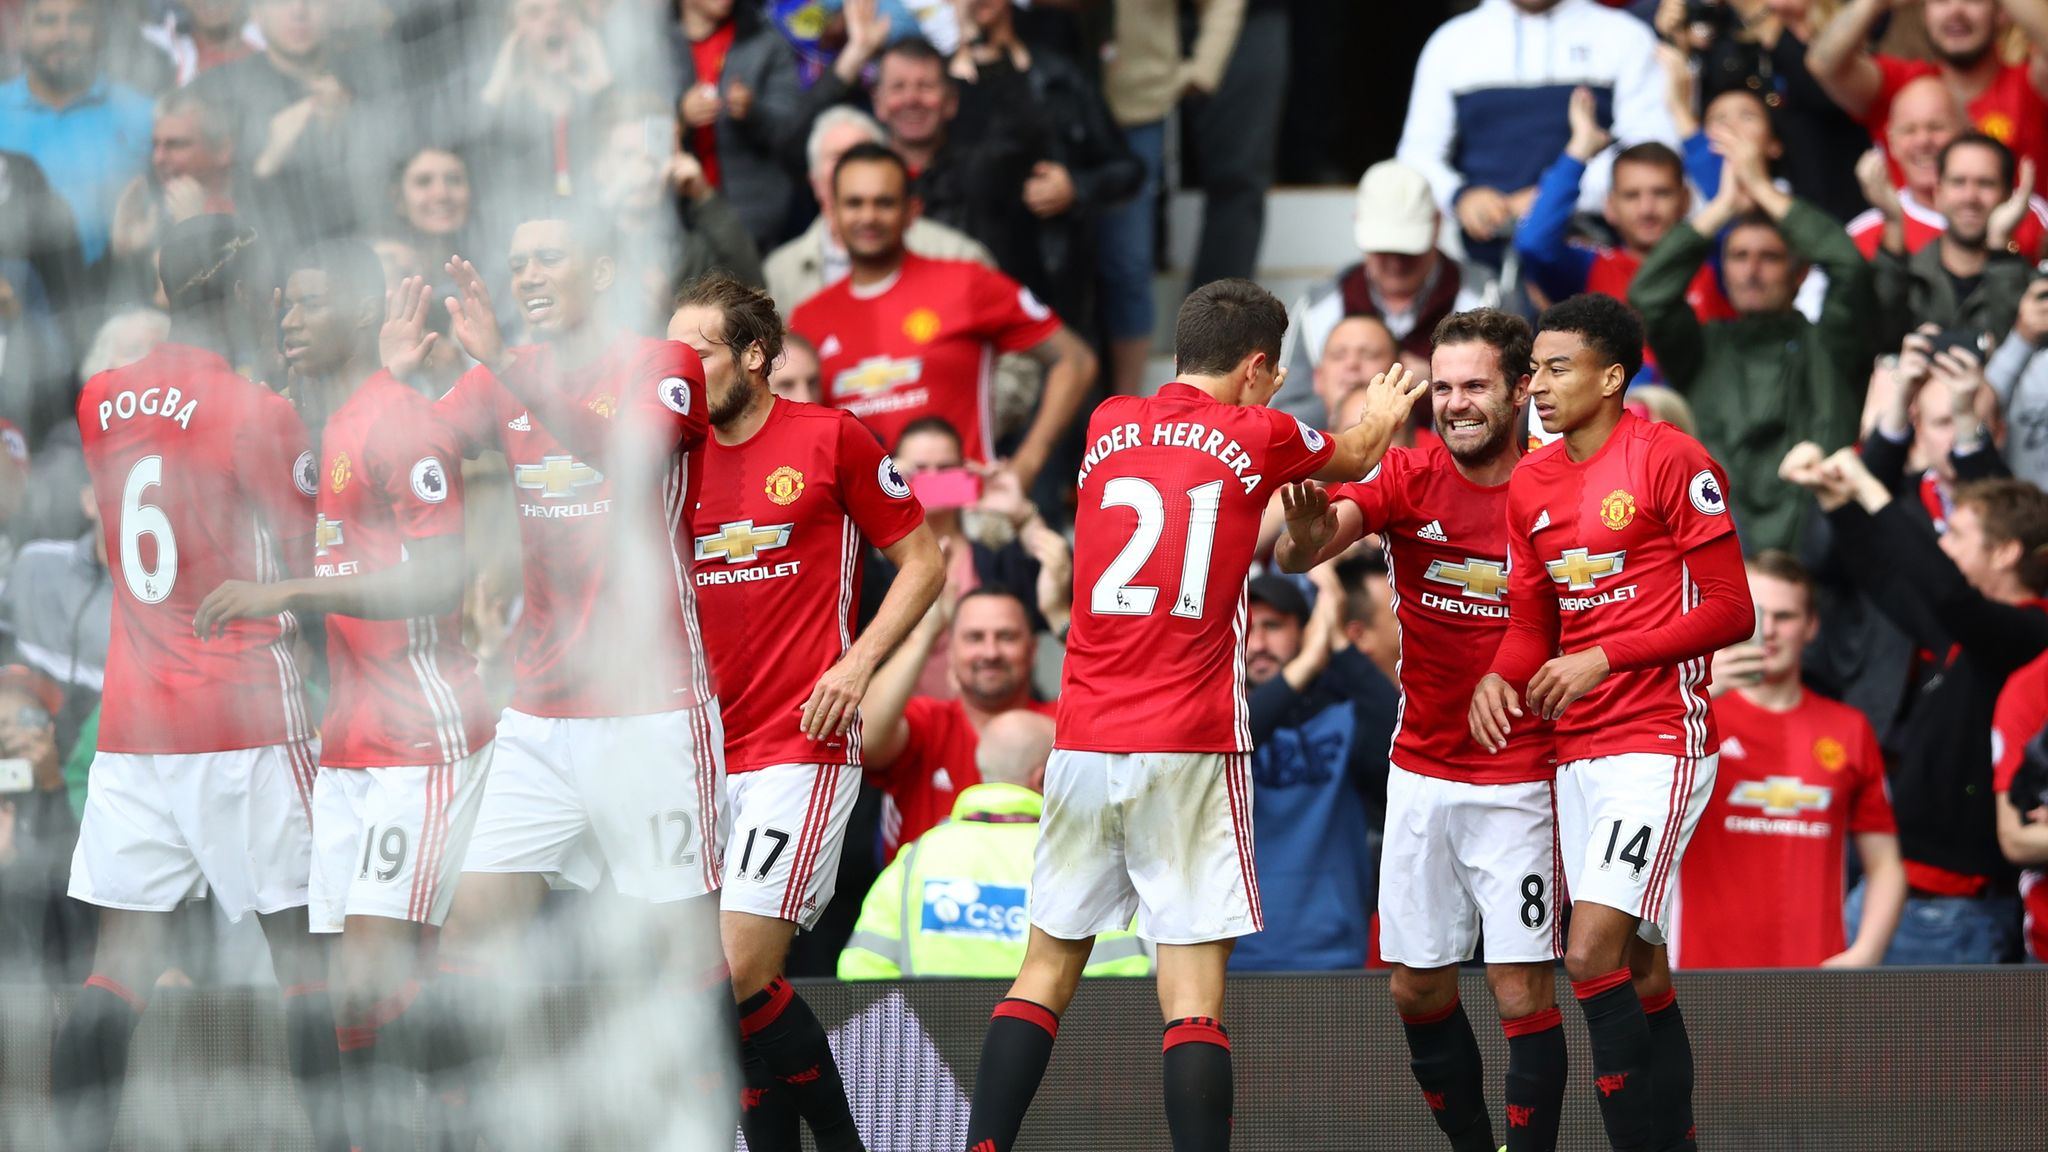 Manchester United sell more shirts than any other club in world